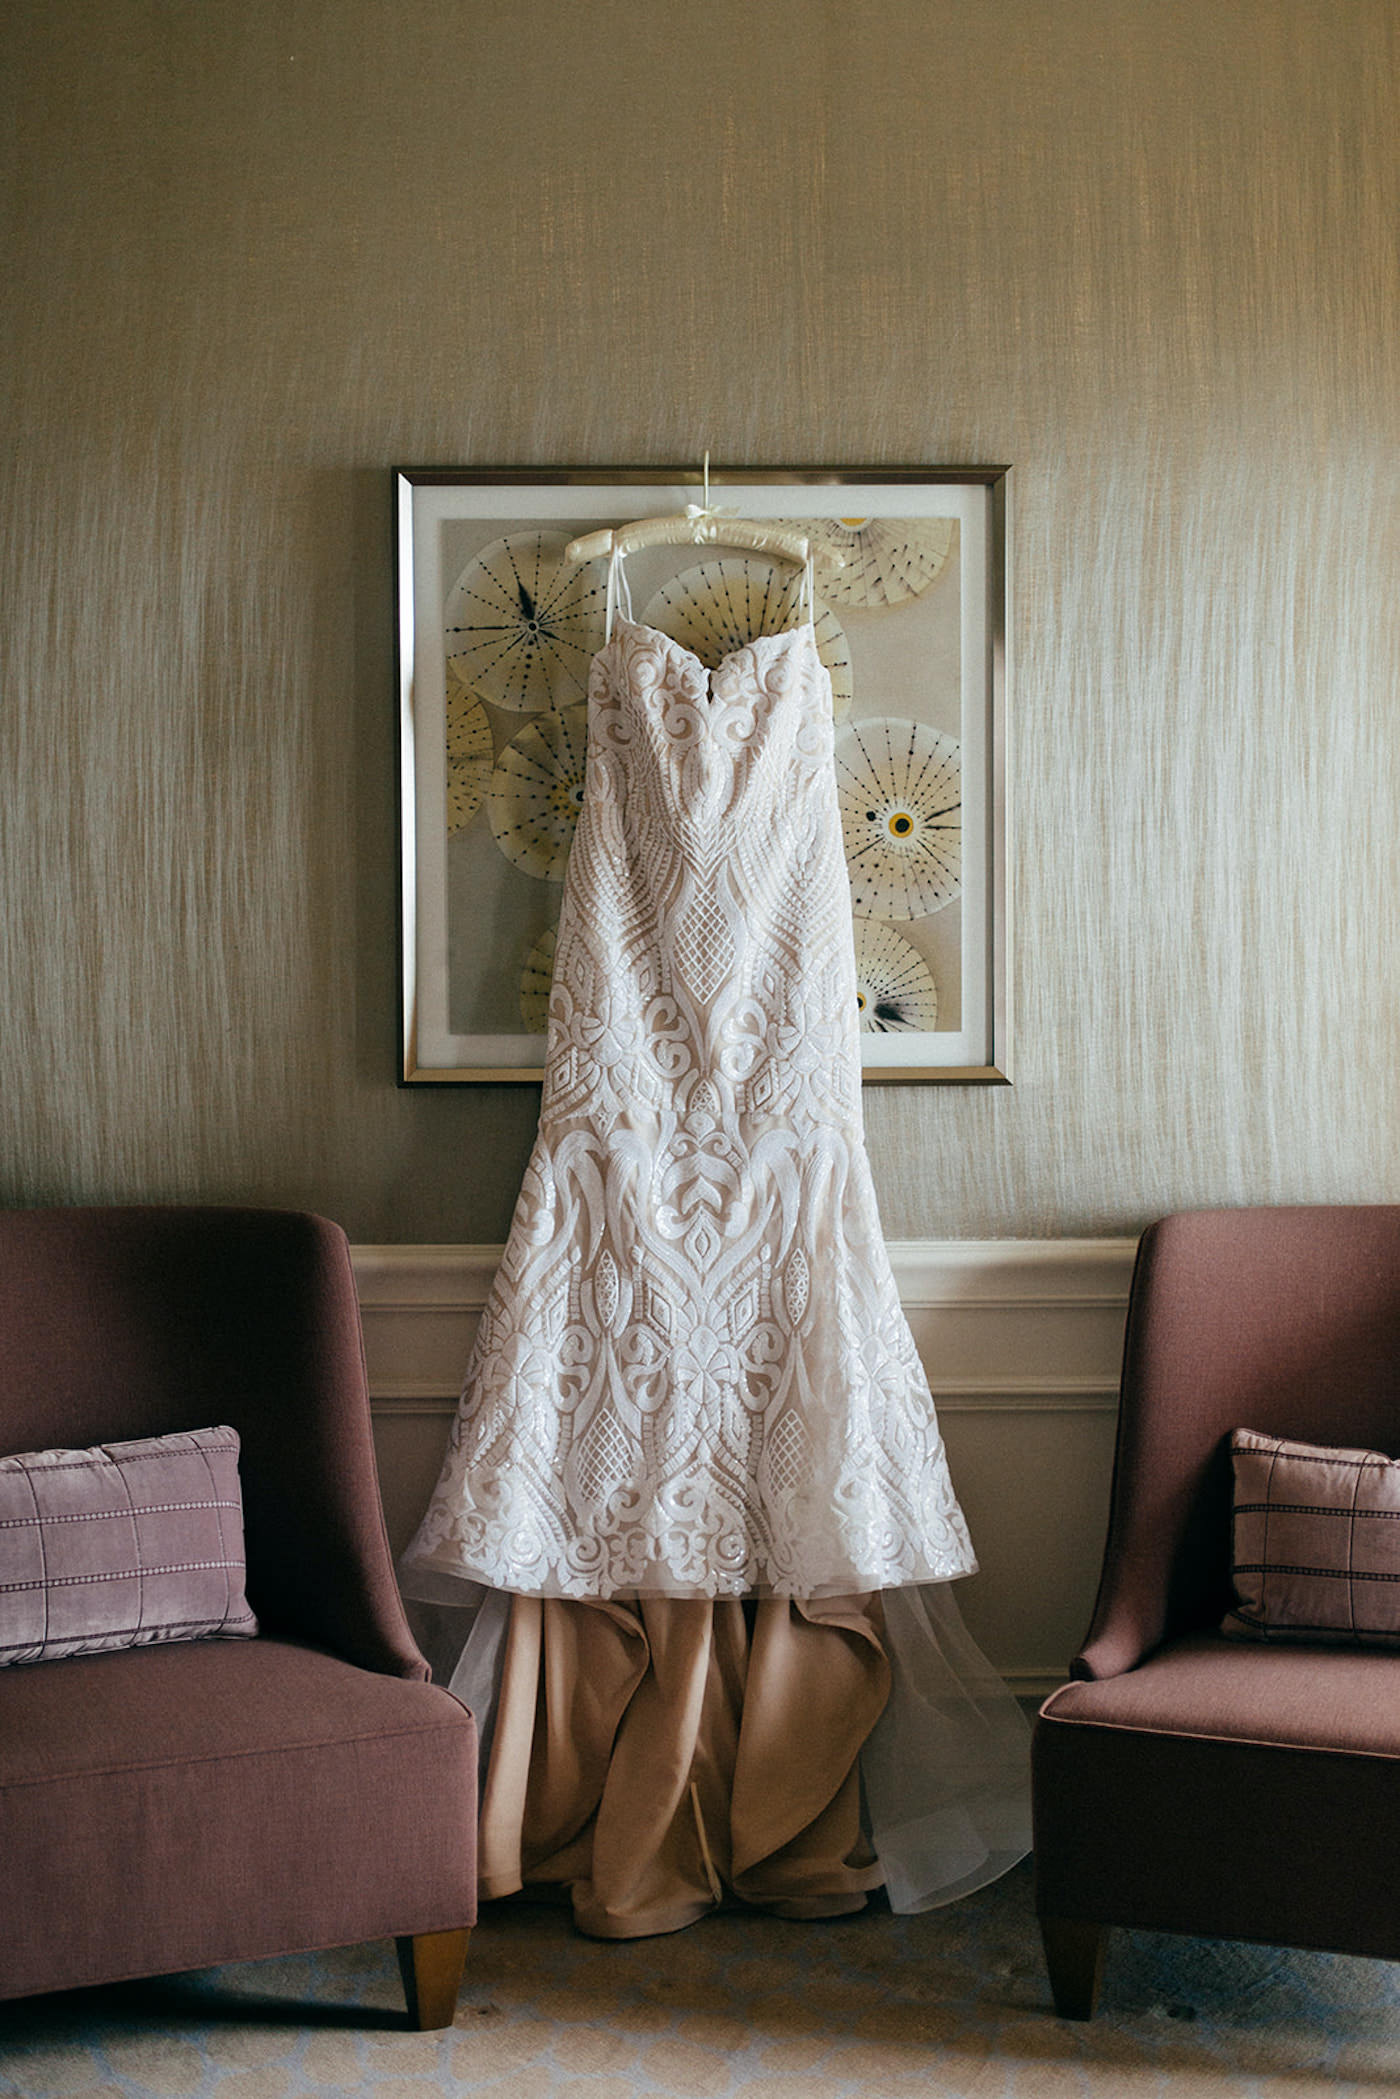 Romantic Hanging Florida Wedding Dress, Strapless Hayley Paige White and Ivory Wedding Dress with Lace Overlay Detailing